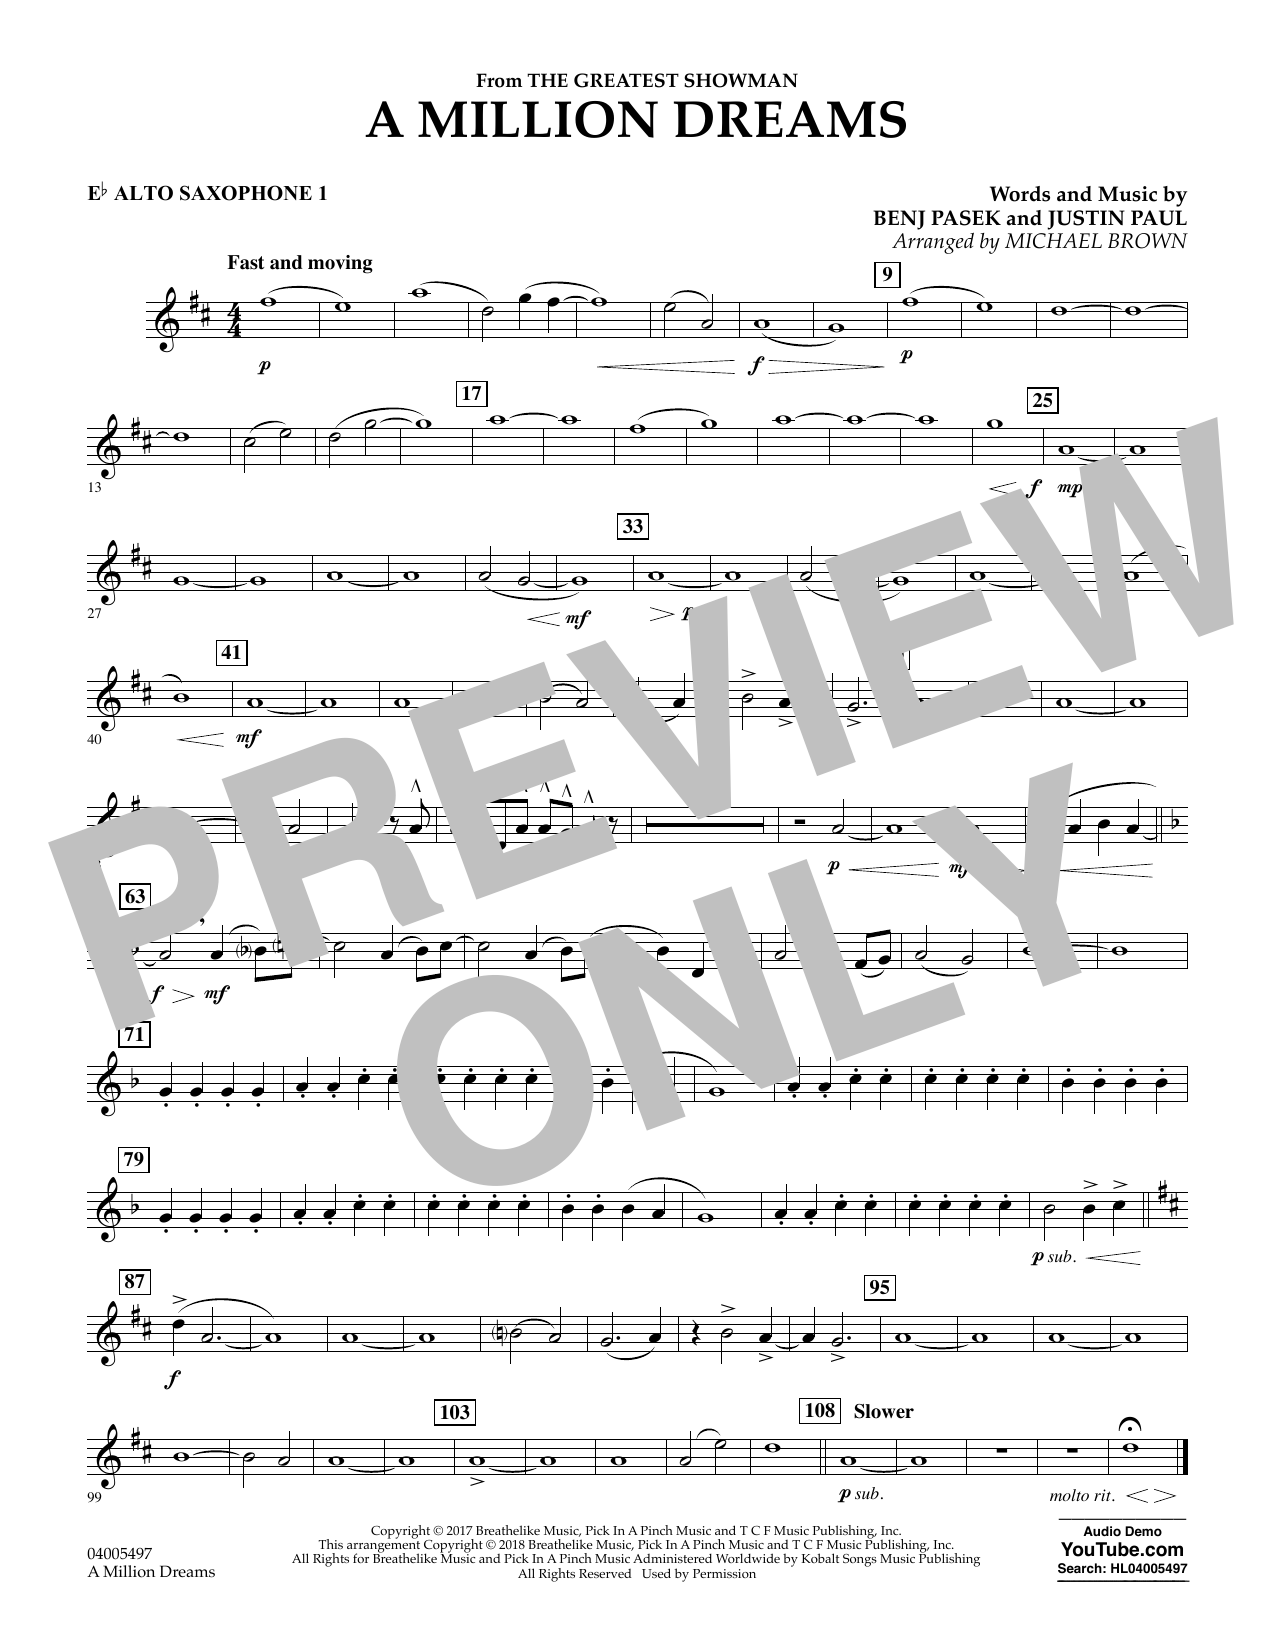 picture about A Million Dreams Lyrics Printable called A Million Wants (towards The Biggest Showman) (arr. Michael